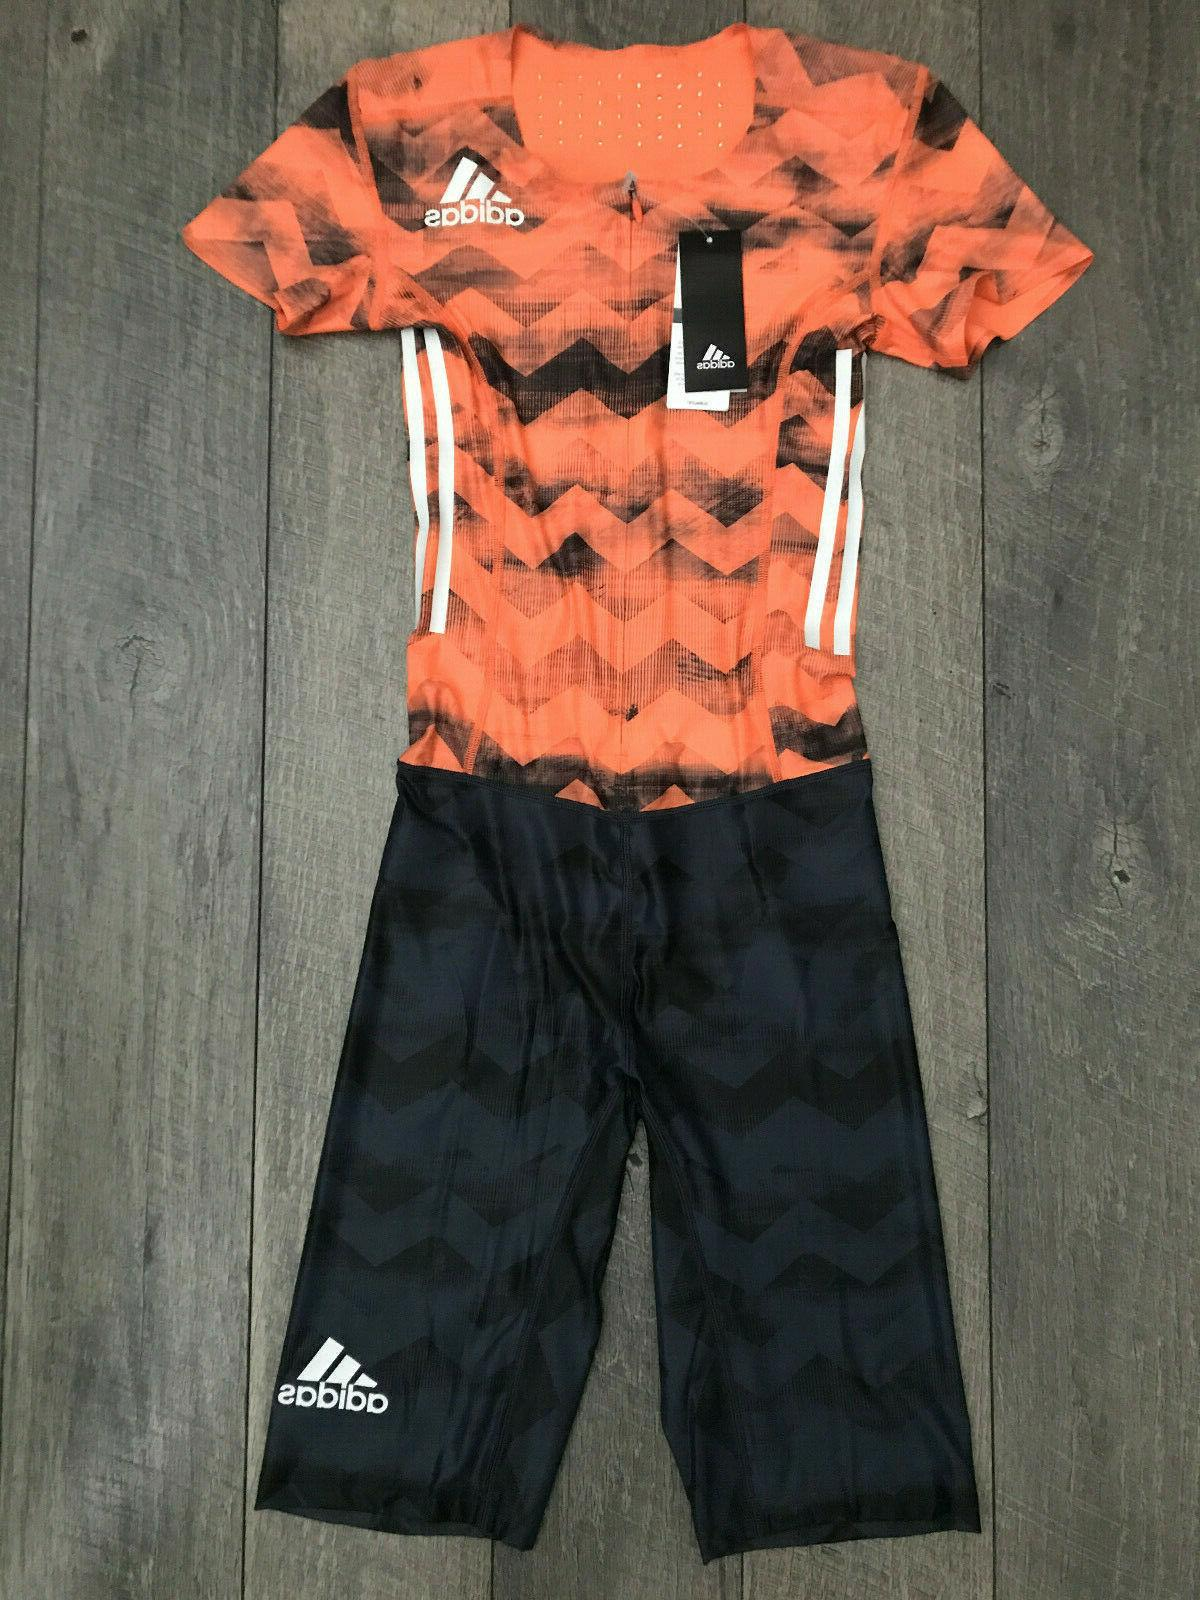 adizero sprint running track suit mens size